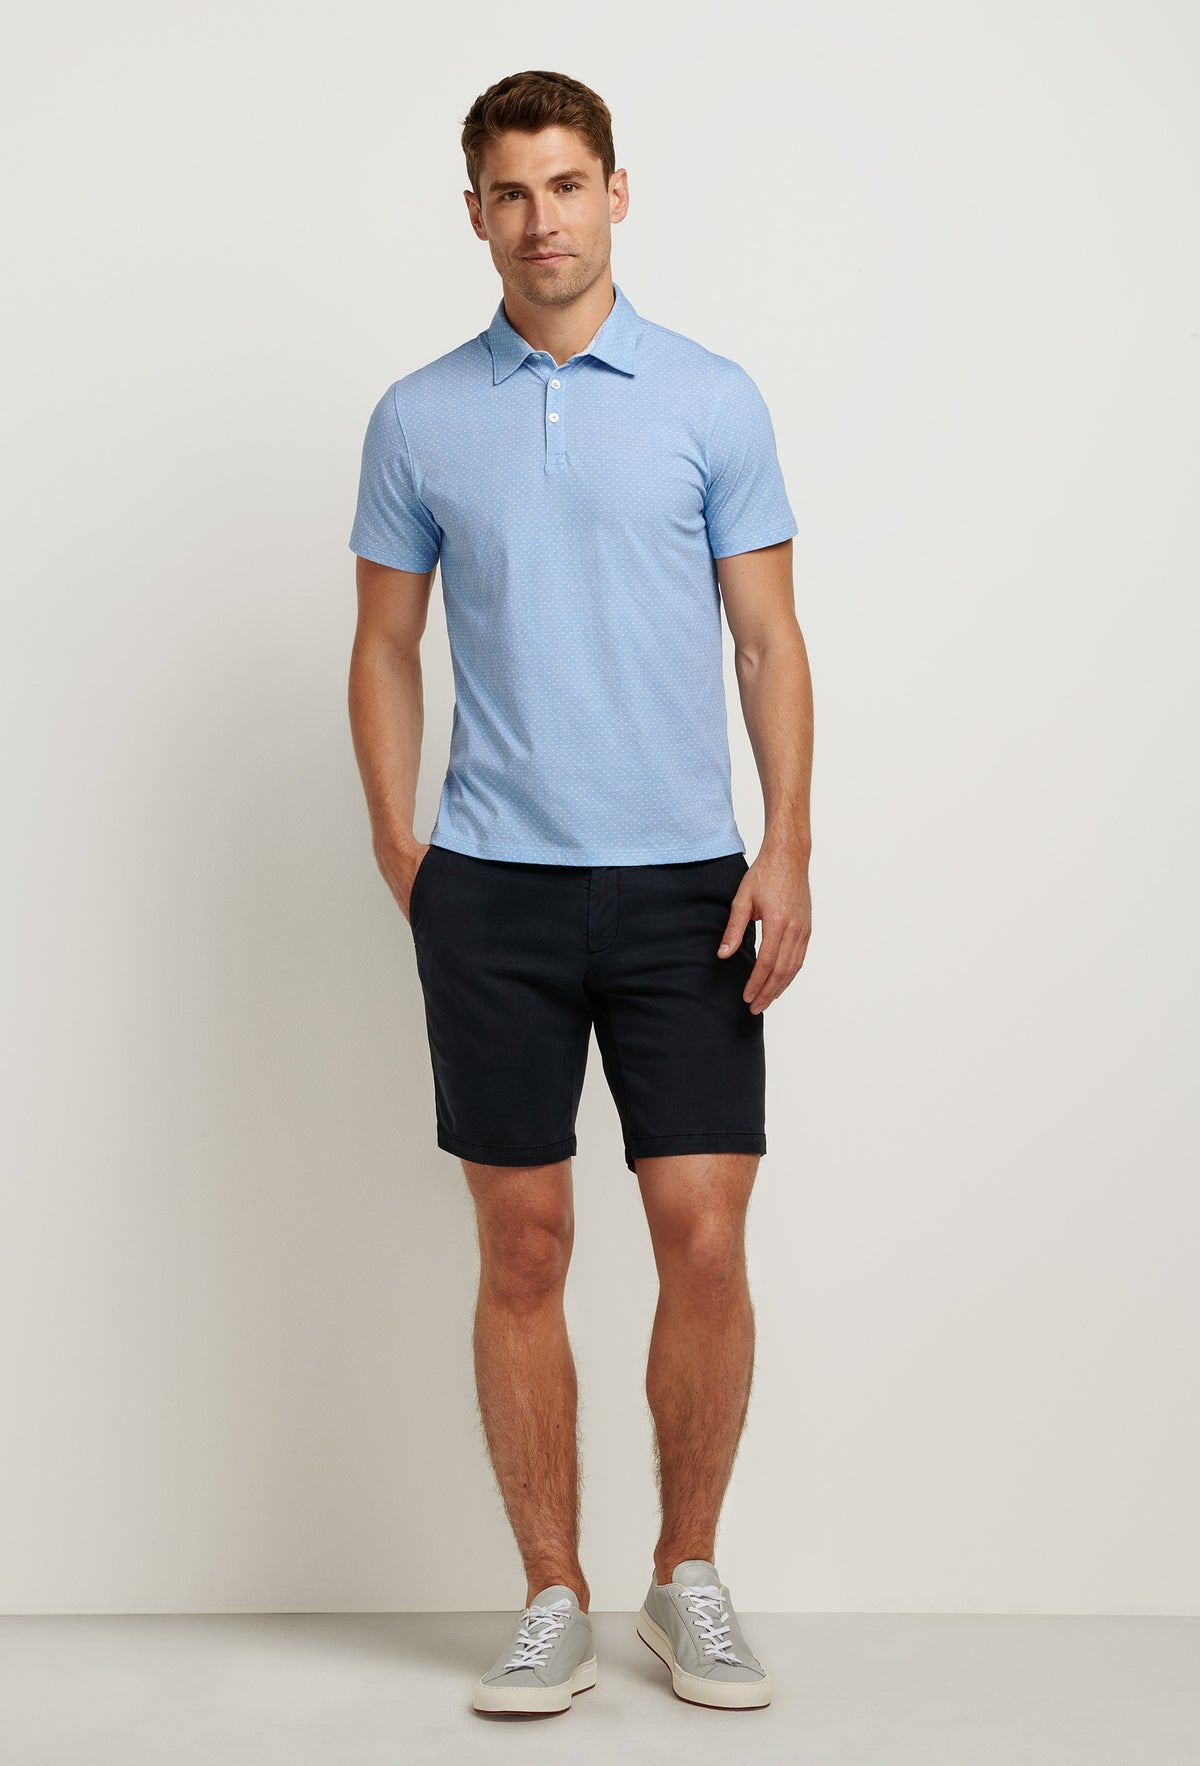 ZACHARY-PRELL-Southold-PolosModern-Menswear-New-Dress-Code